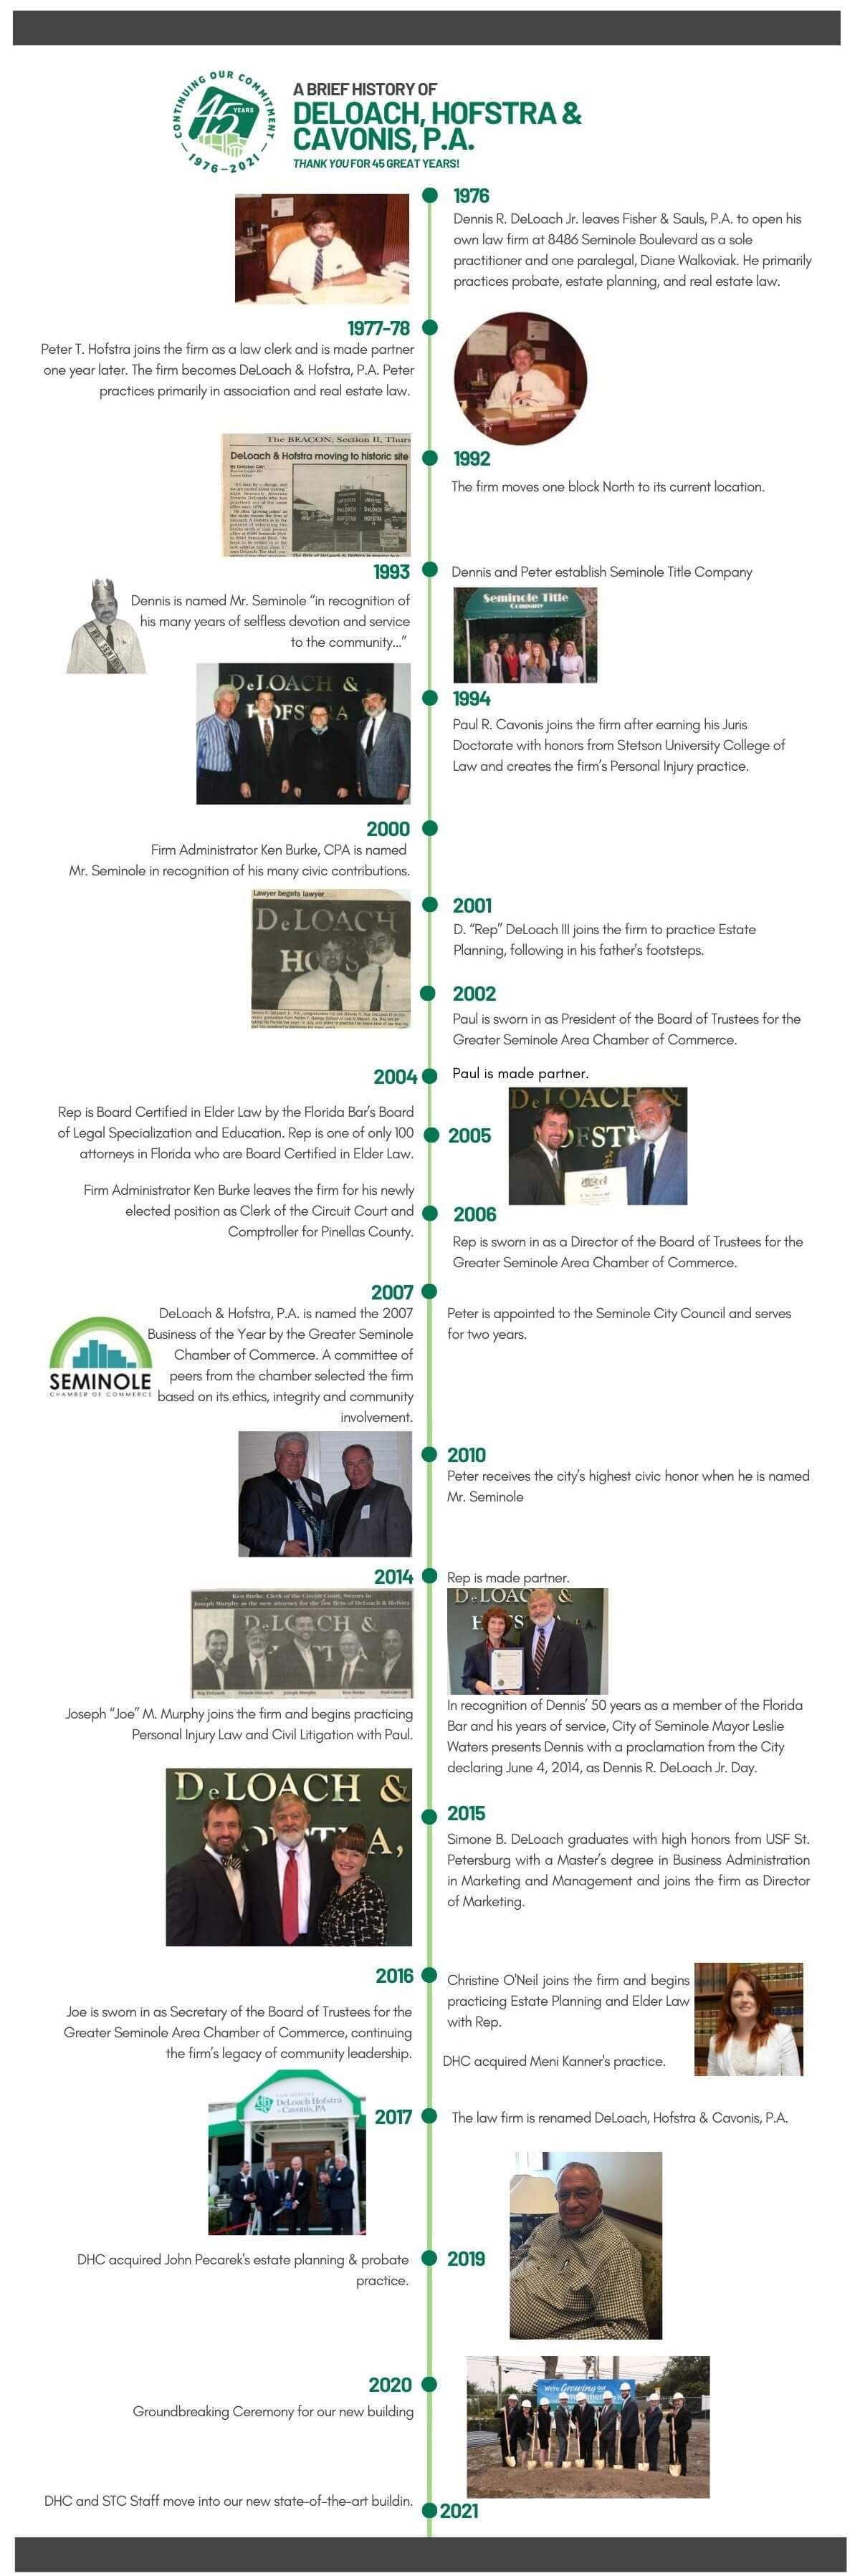 DHC firm history timeline from 1976 to 2021